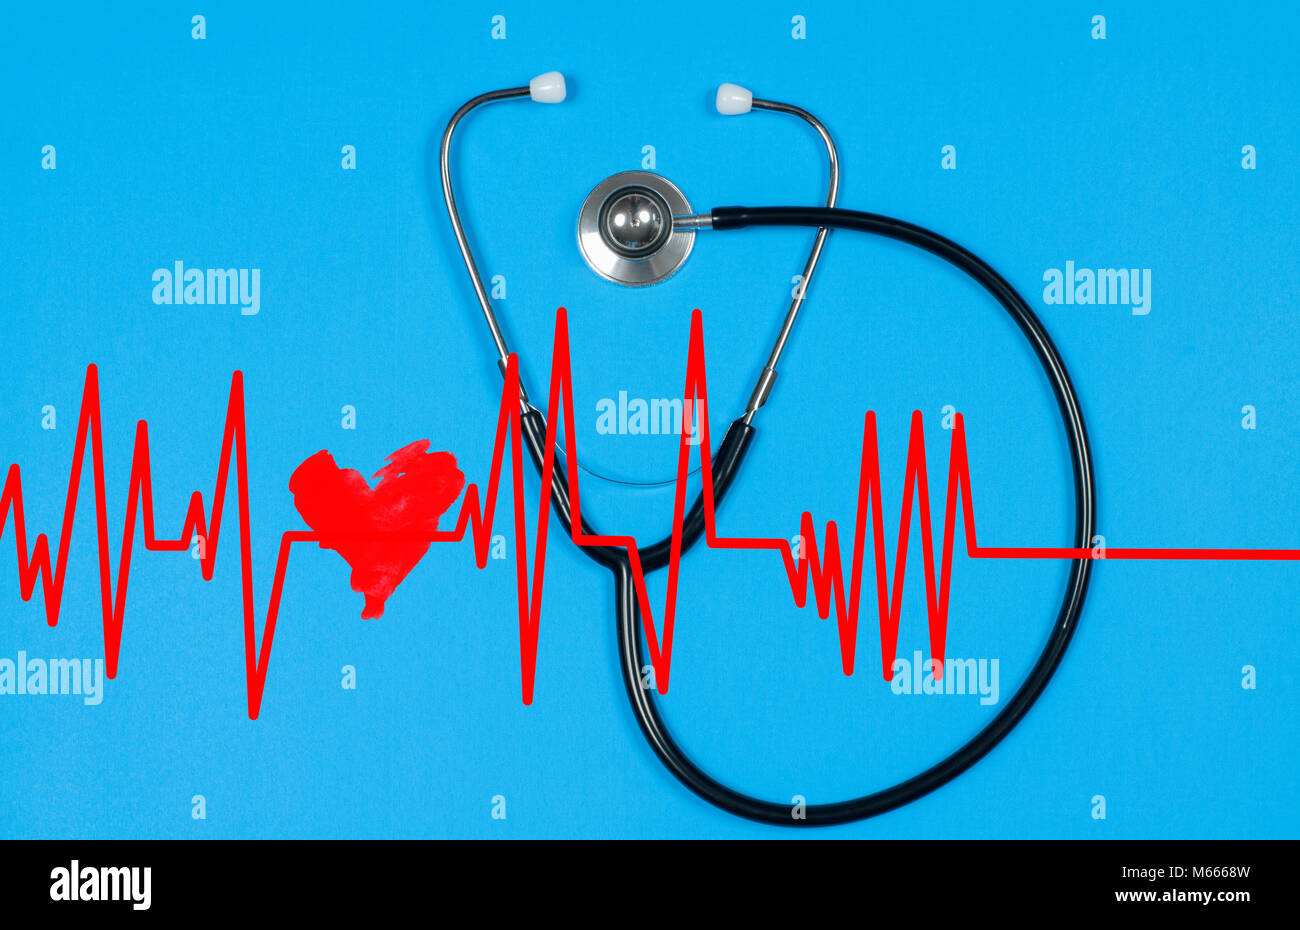 Medical stethoscope and red heart with cardiogram on blue background. Health Concepts - Stock Image